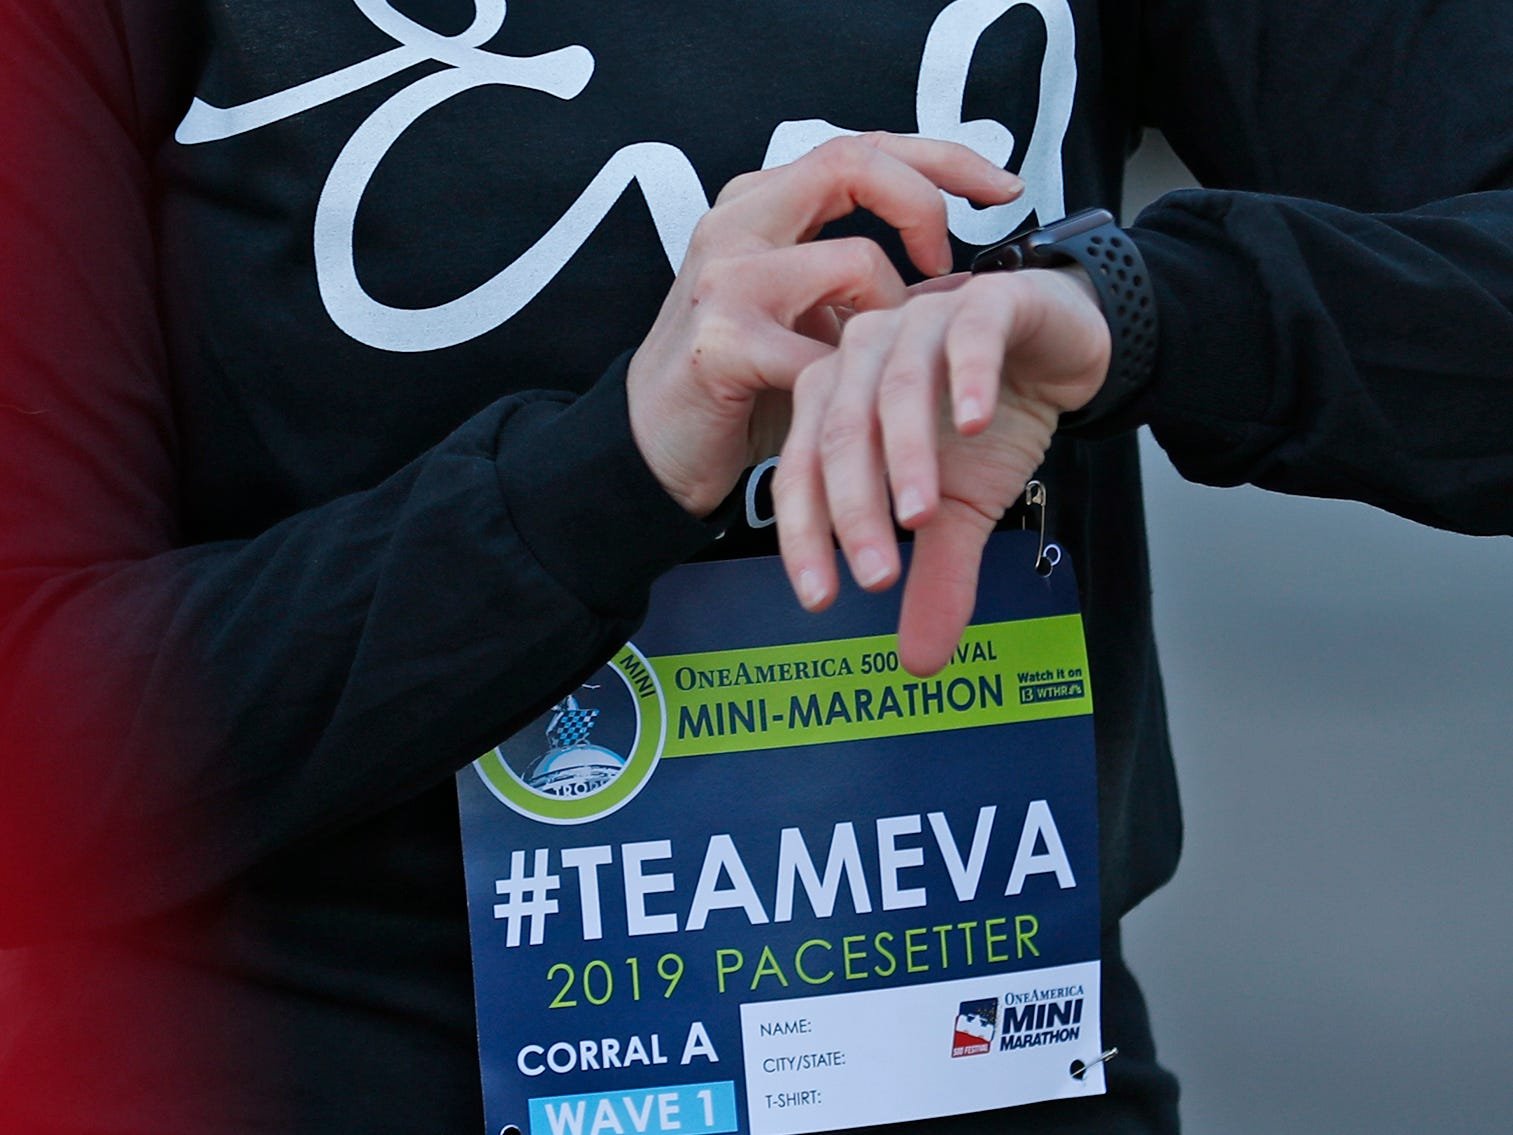 Mika Brown sets her watch before running the first leg, Wednesday, Oct. 24, 2018, of the pace-setting run for the 2019 OneAmerica 500 Festival Mini-Marathon.  The 500 Festival will donate $1 to the CANDLES Holocaust Museum in Terre Haute for every mini-marathon participant who finishes the 2019 race in a better time than Team Eva.  Holocaust survivor Eva Kor joined the fun at the Indianapolis Motor Speedway's Yard of Bricks and ran the very last part of the race.